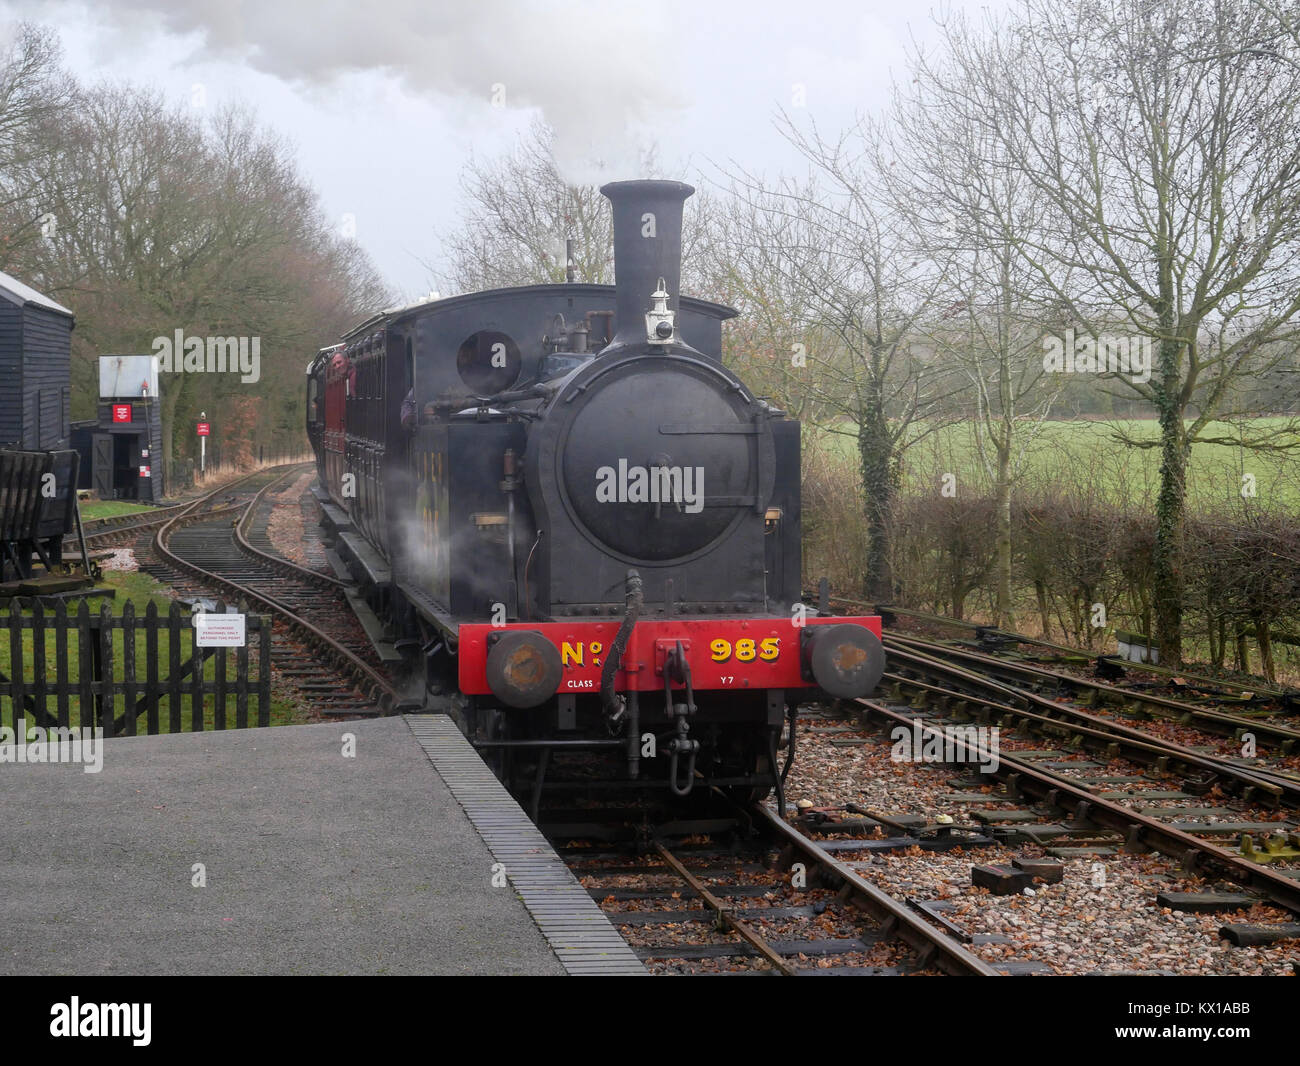 An ex. London and North Eastern railway class Y7 0-4-0 tank engine brings a train into Brockford station - Stock Image